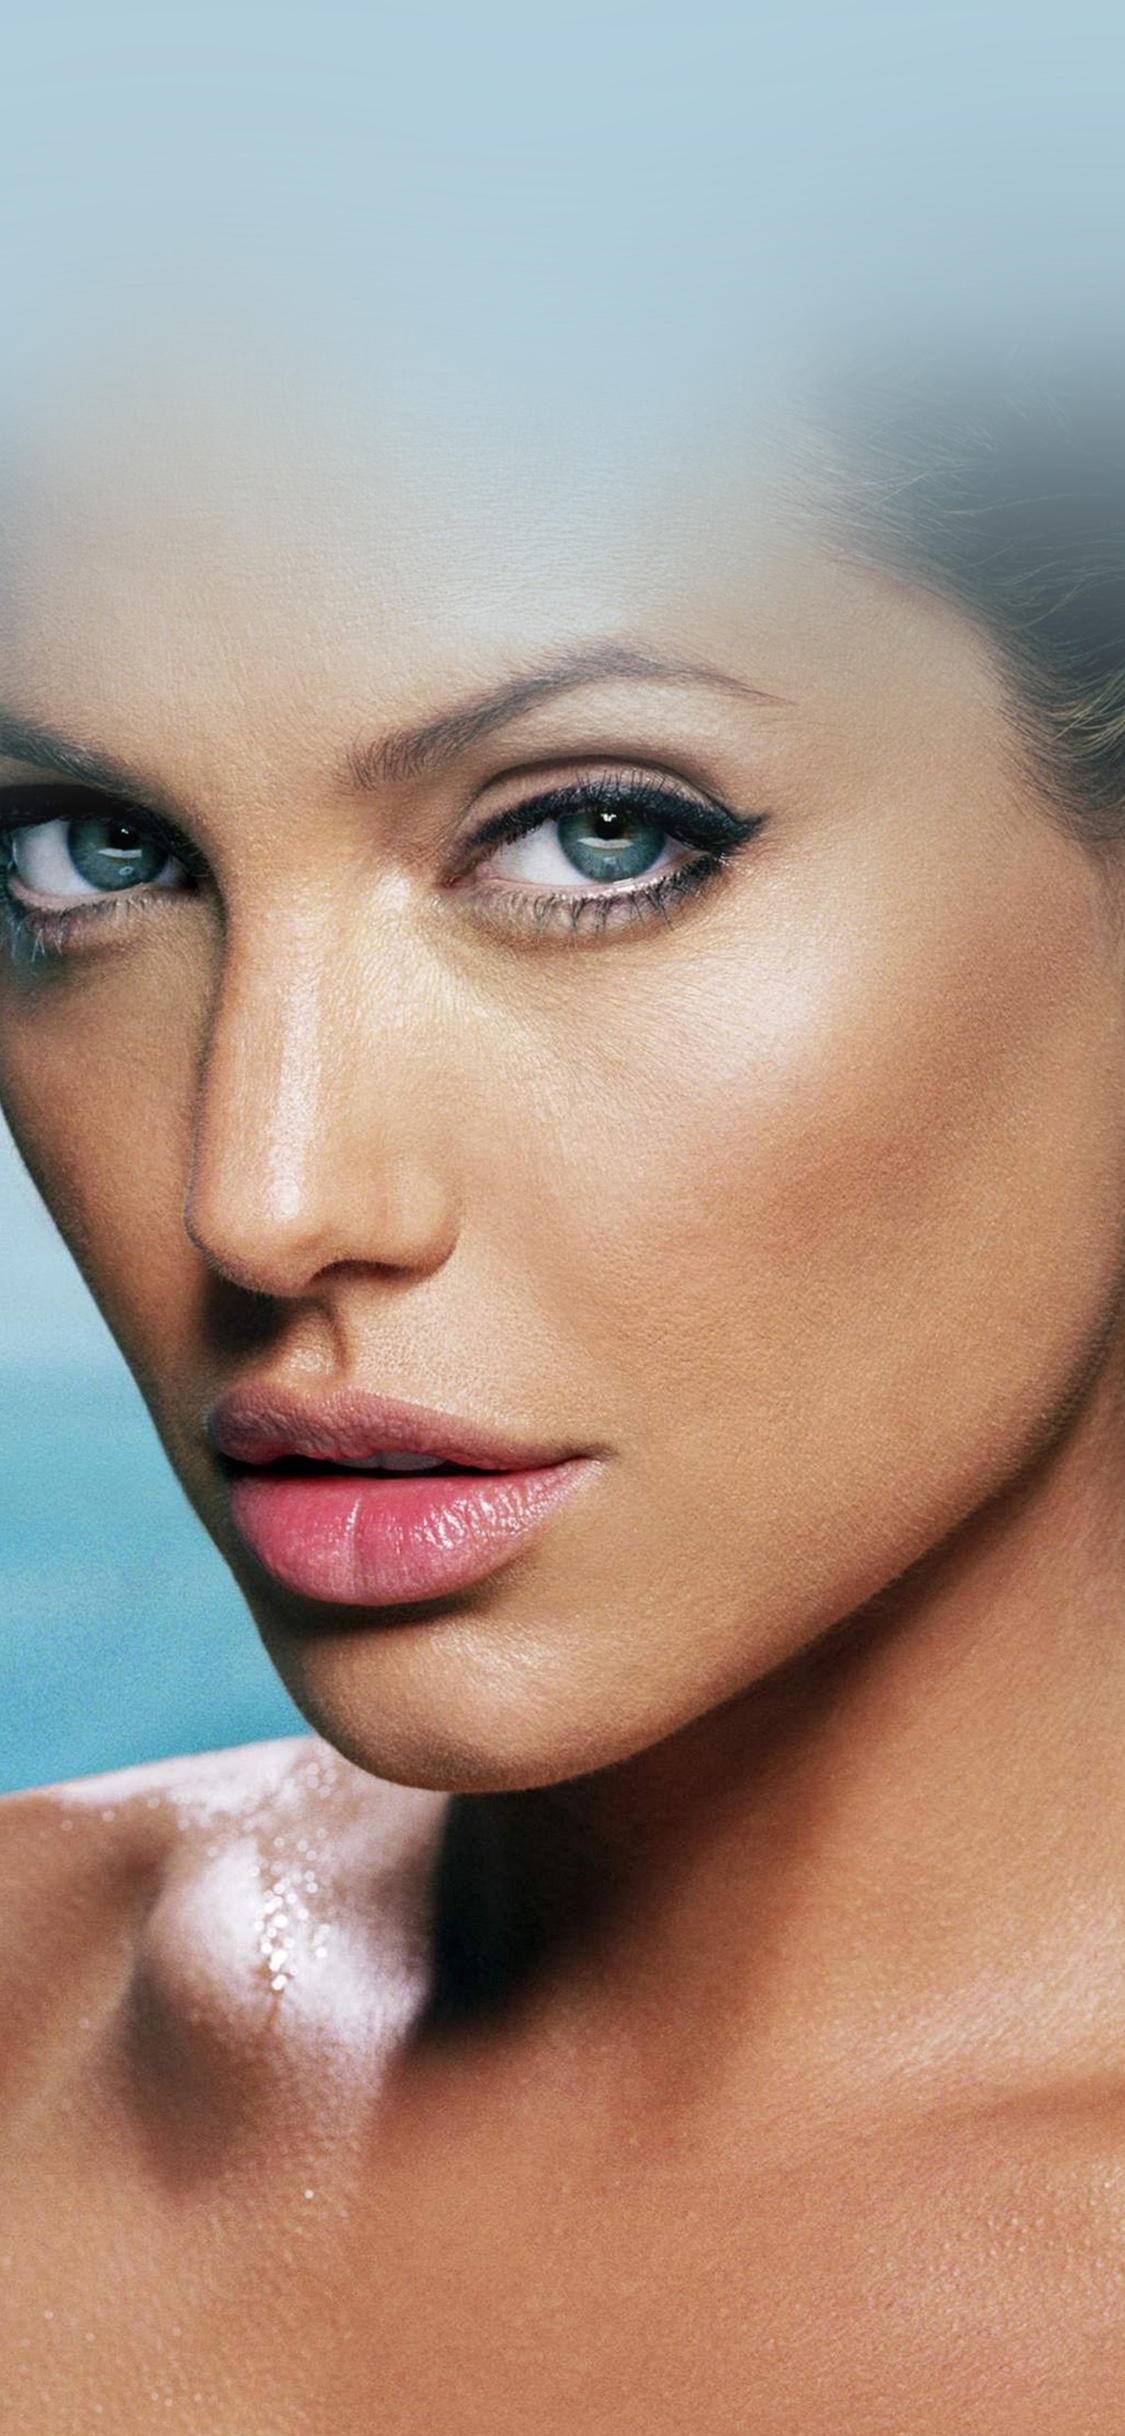 iPhoneXpapers.com-Apple-iPhone-wallpaper-hg00-sexy-angelina-jolie-starring-bikini